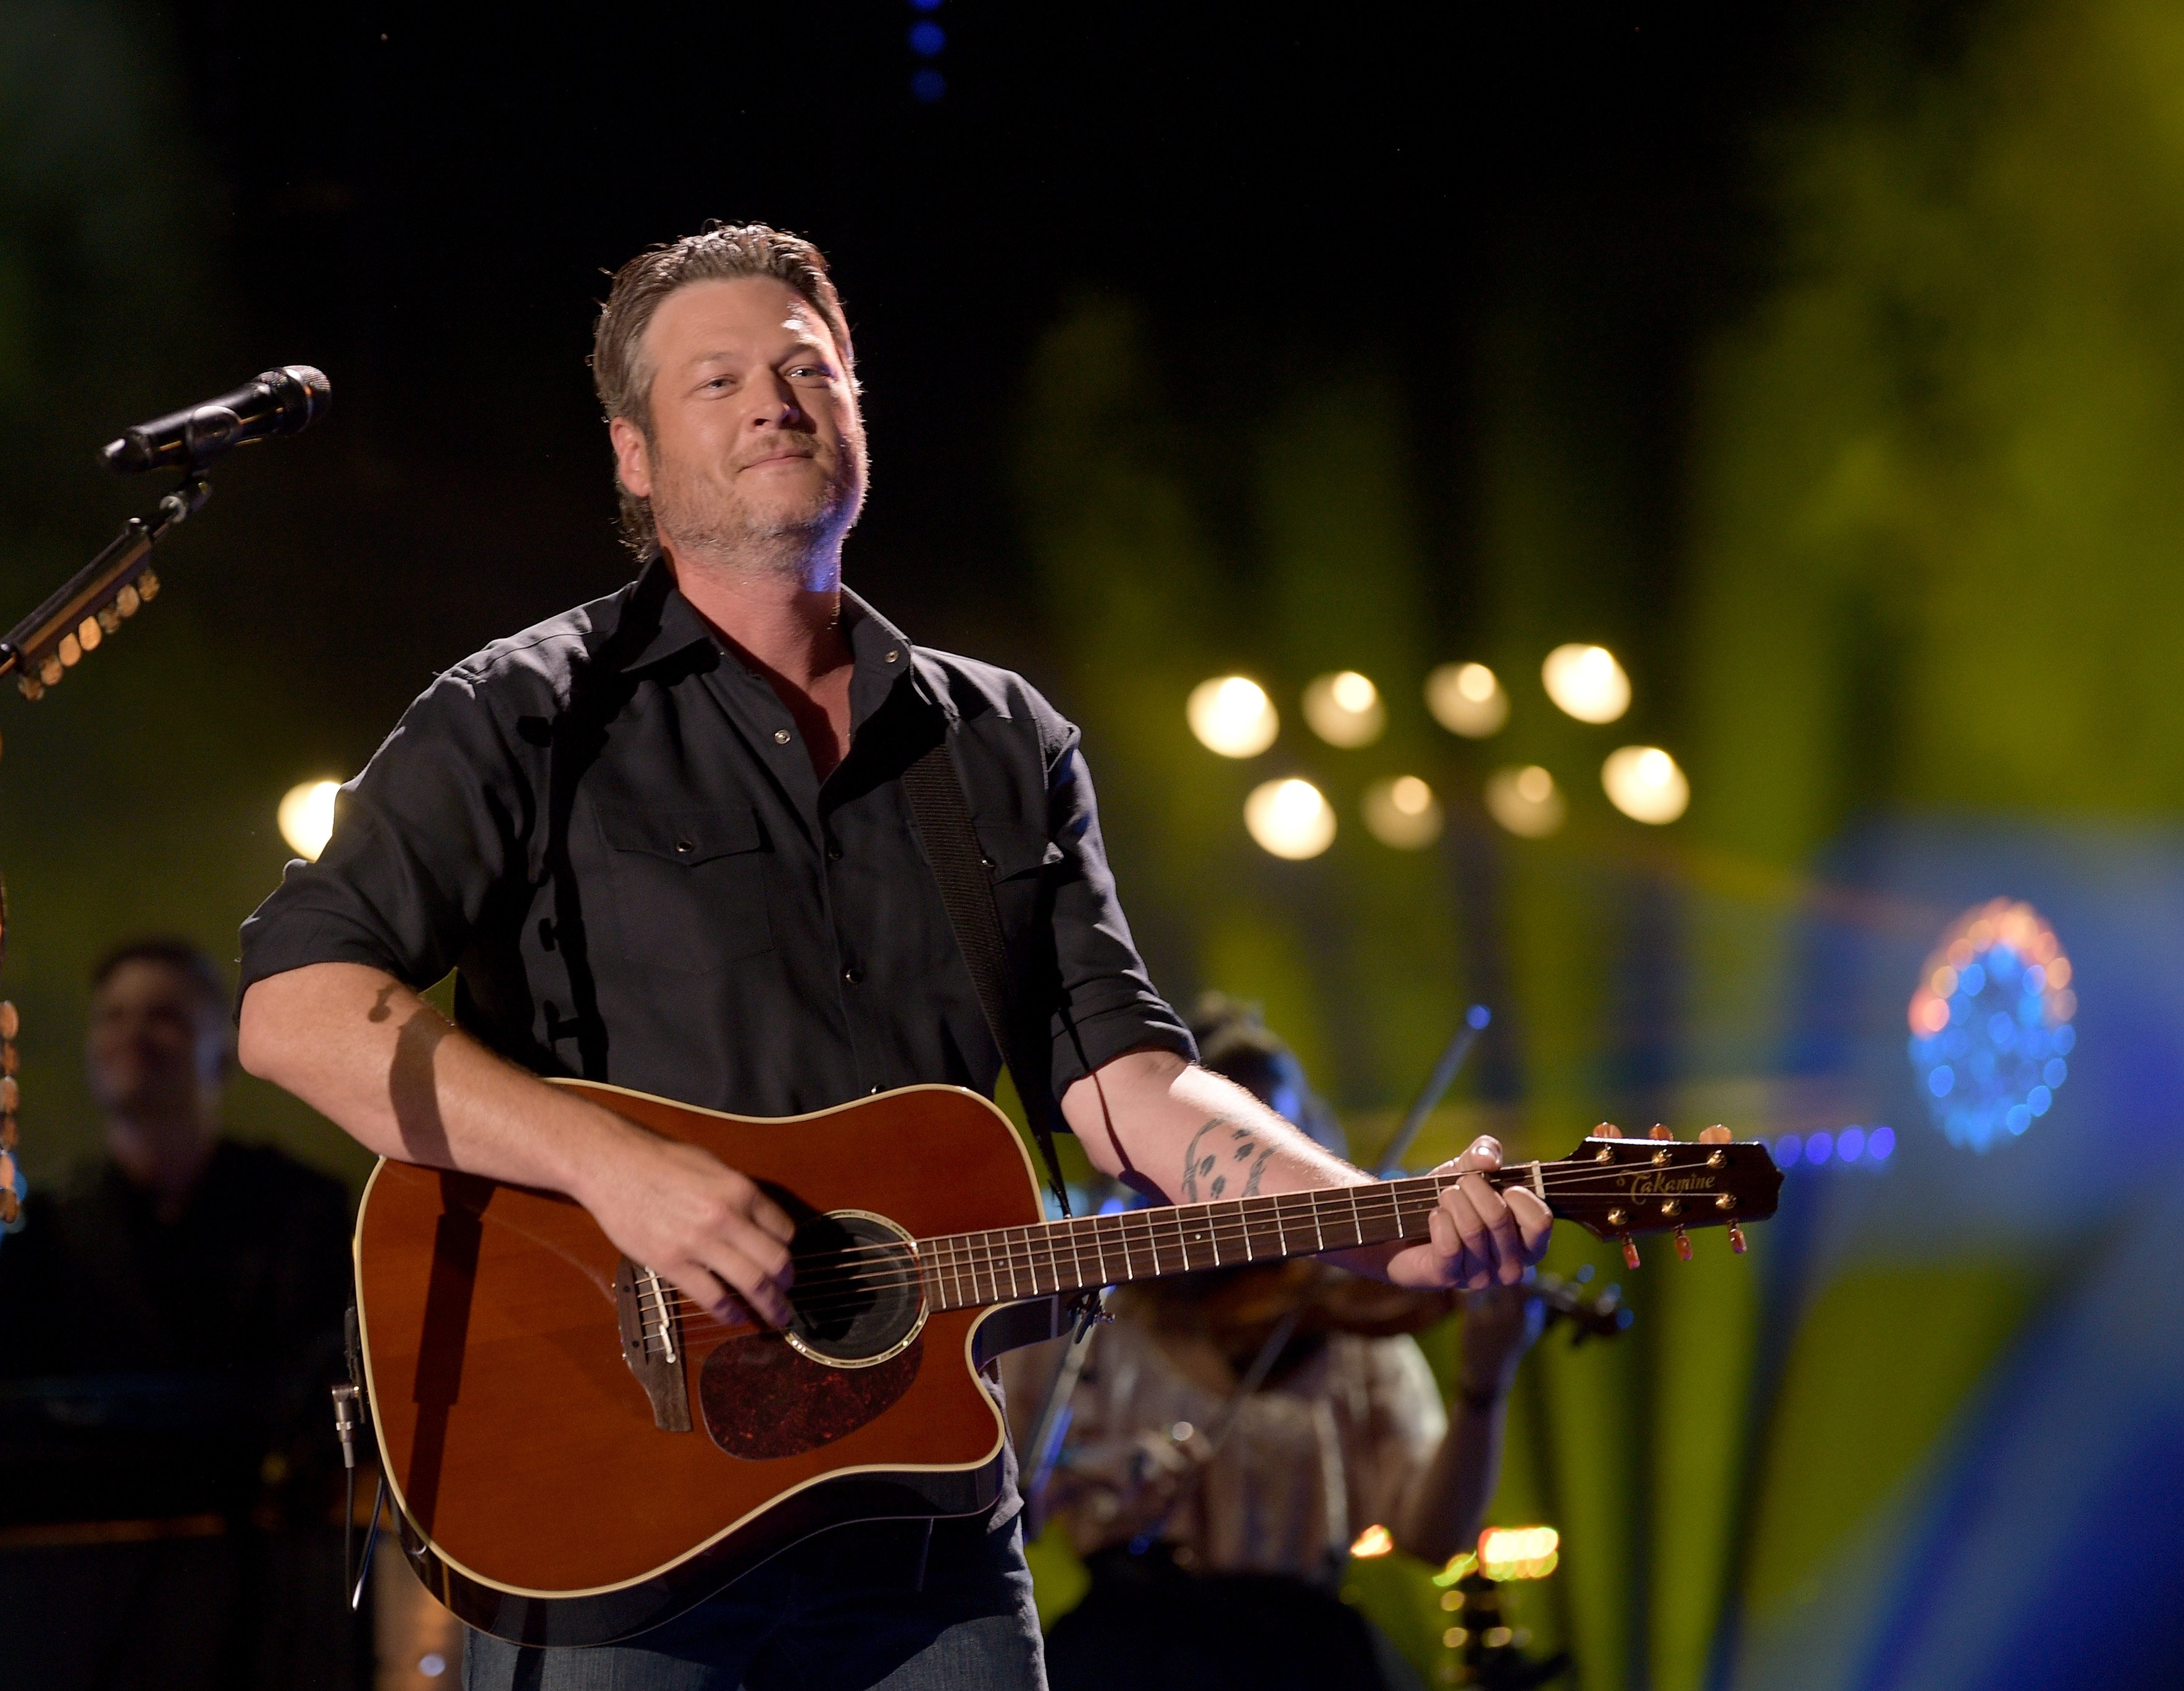 Blake Shelton performs onstage during the 2018 CMA Music festival at Nissan Stadium on June 8, 2018. | Photo: GettyImages